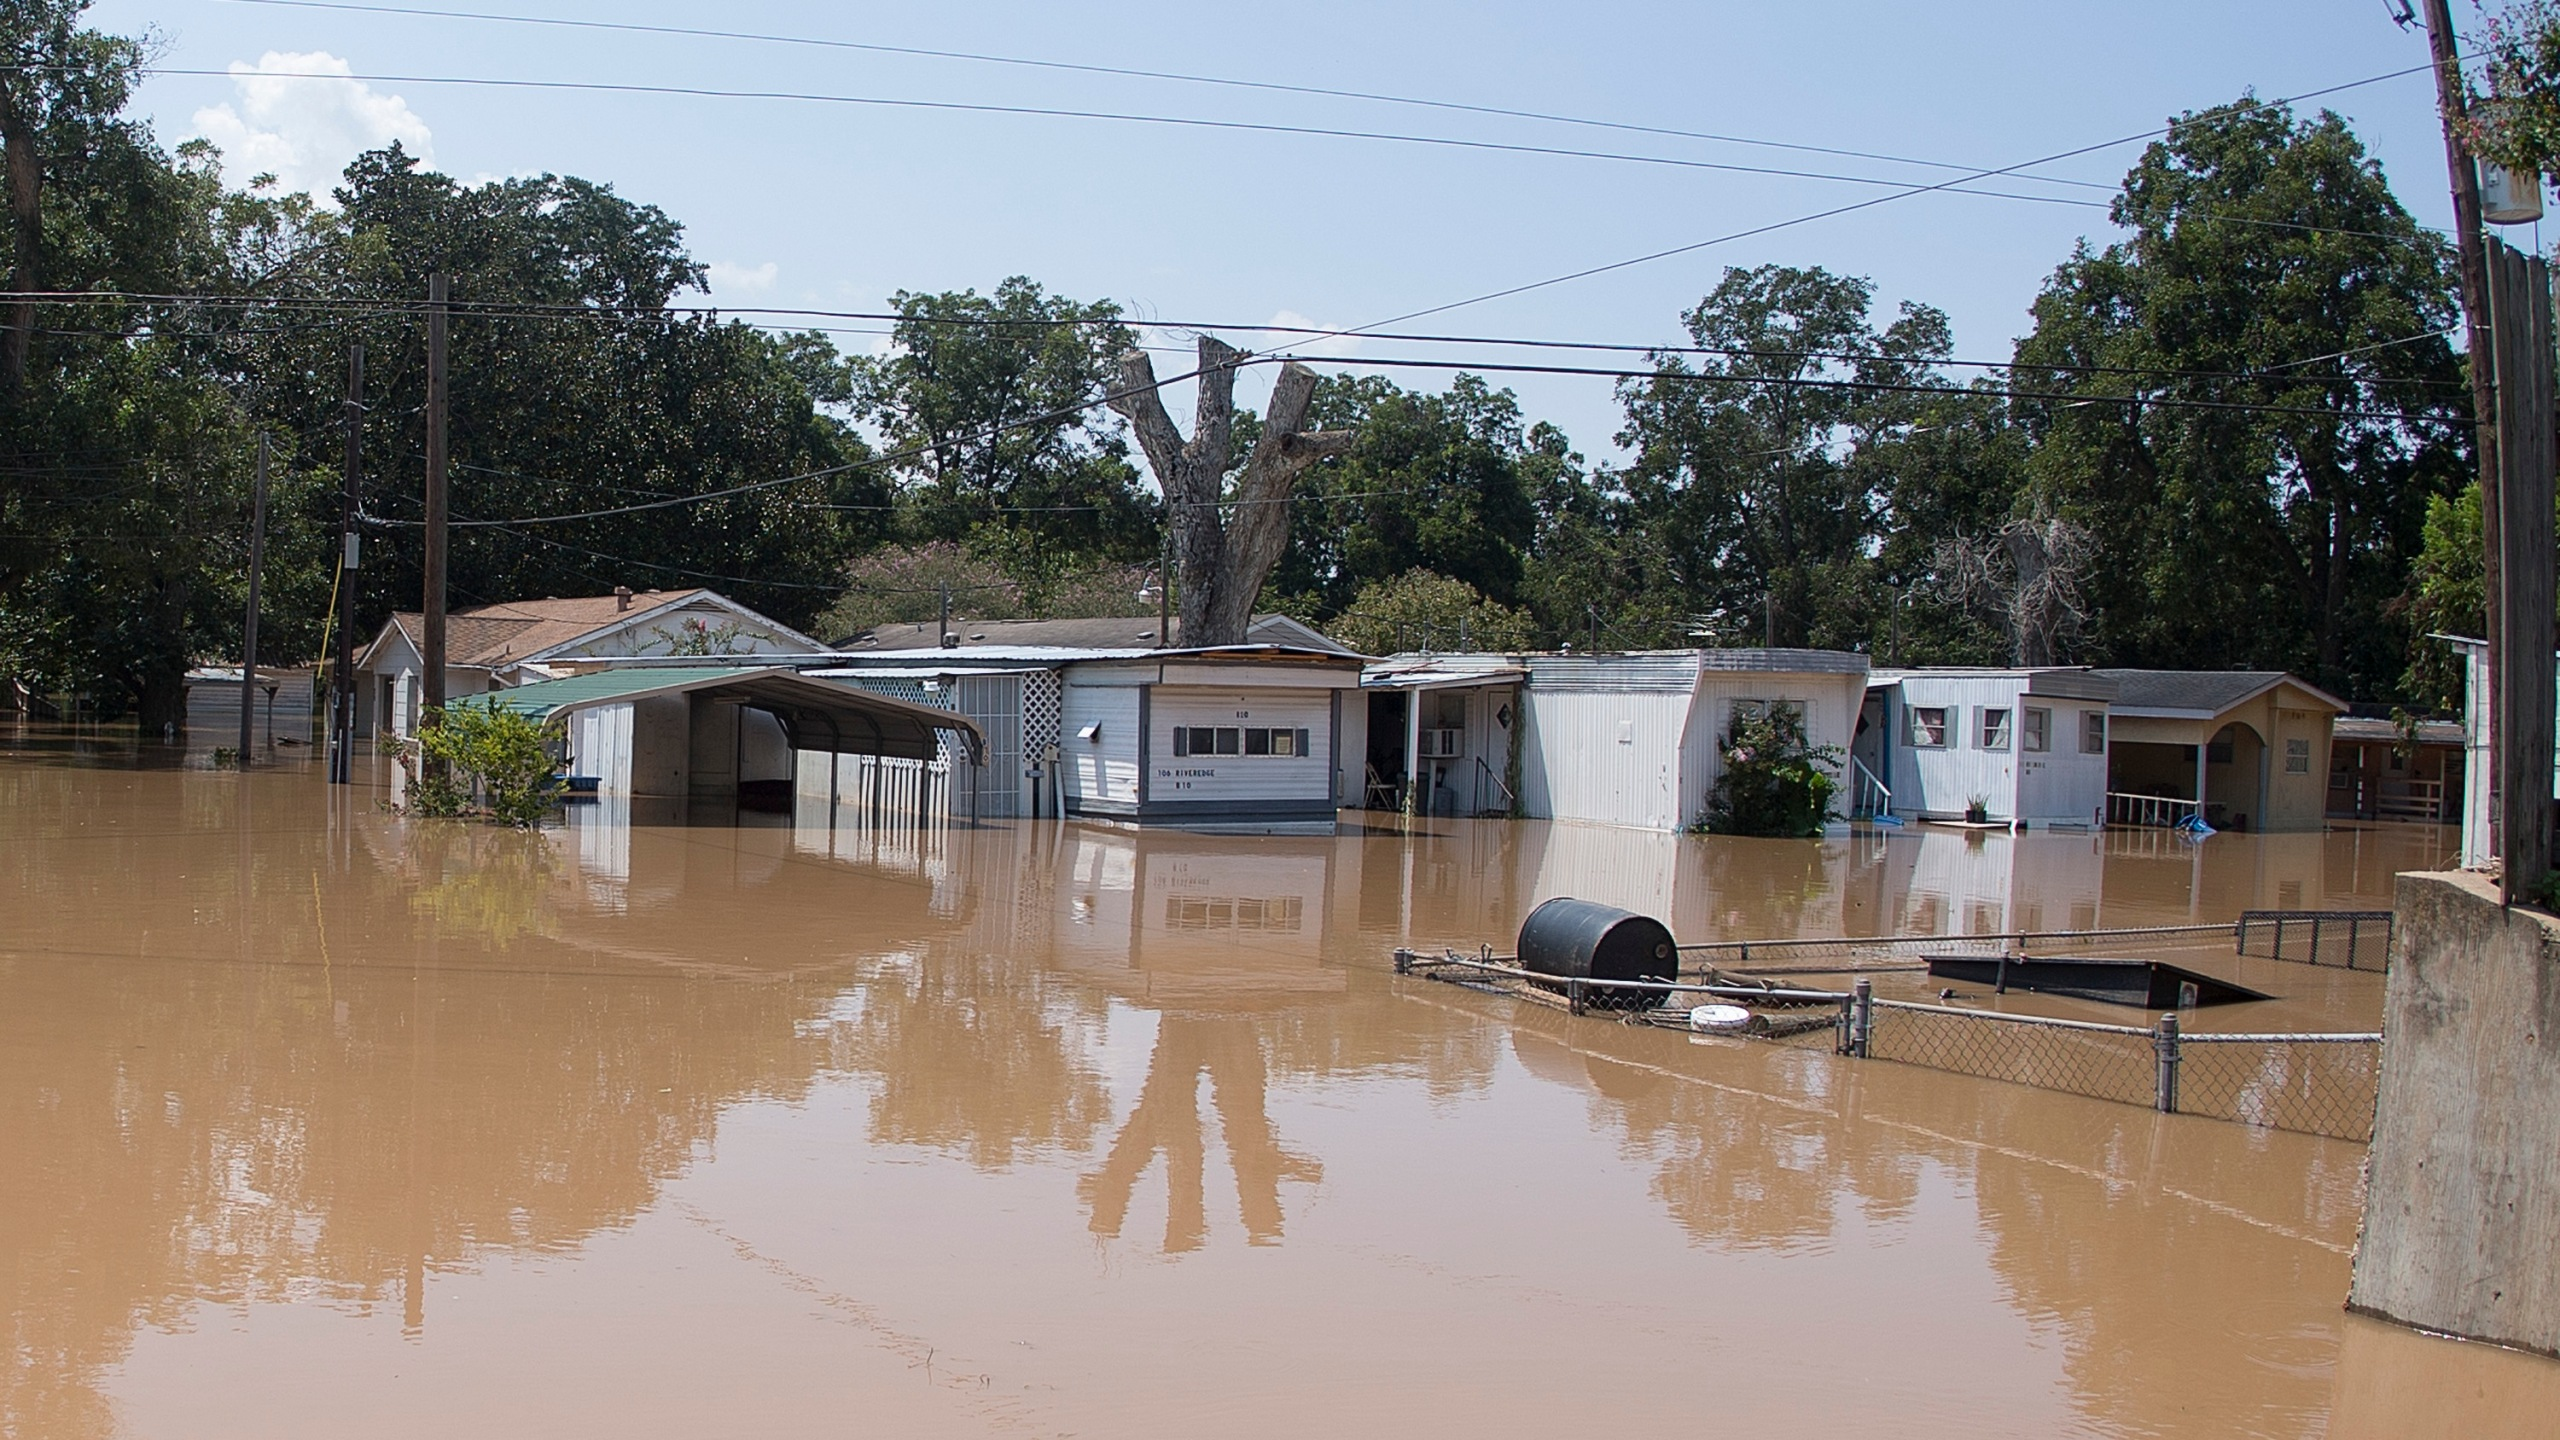 The Edgewood Trailer Park located on the banks of the Brazos River takes on water as the river reaches it's crest on September 1, 2017 in Richmond, Texas. (Credit: Bob Levey/Getty Images)